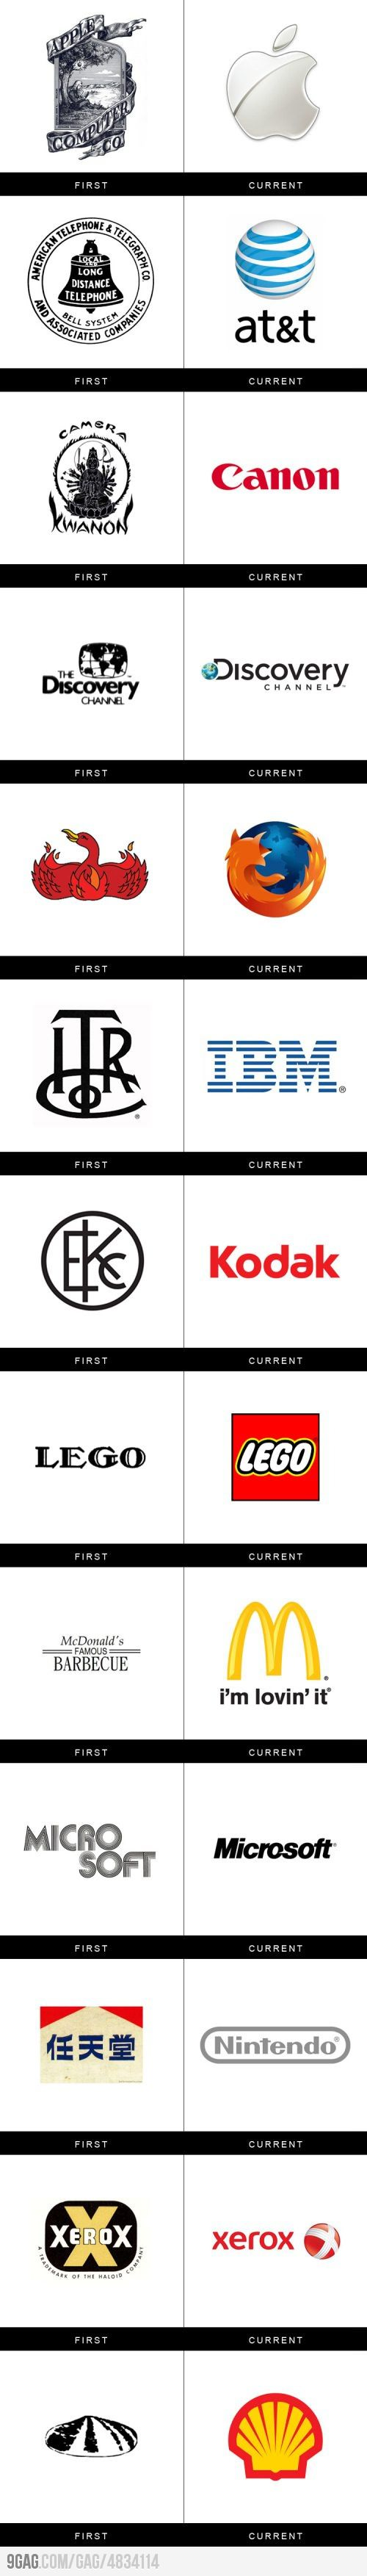 Evolution of Brands One logo, Branding design, Popular logos